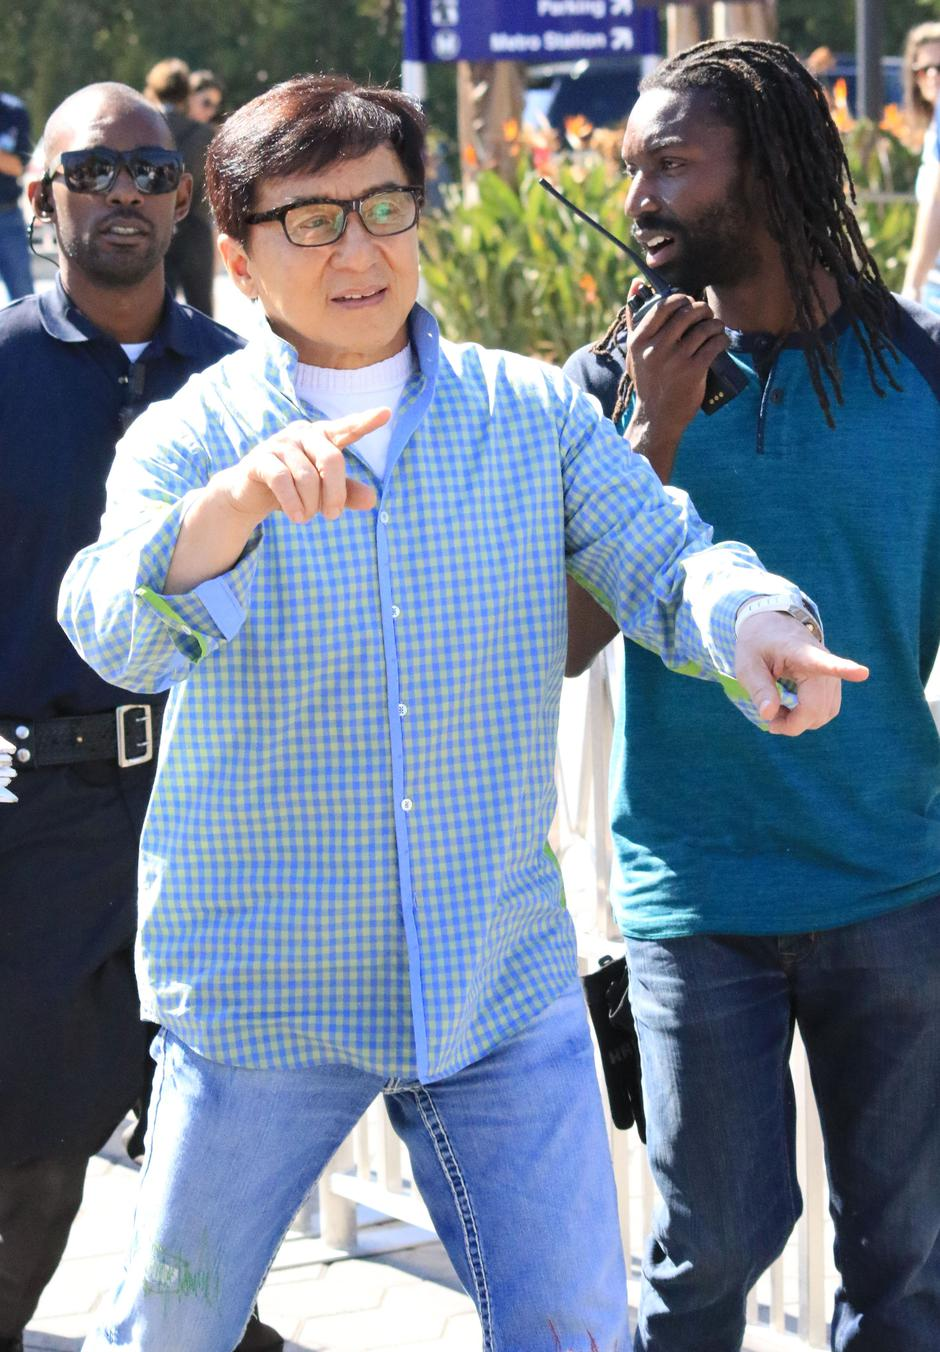 Jackie Chan | Author: GOTPAP/Press Association/PIXSELL